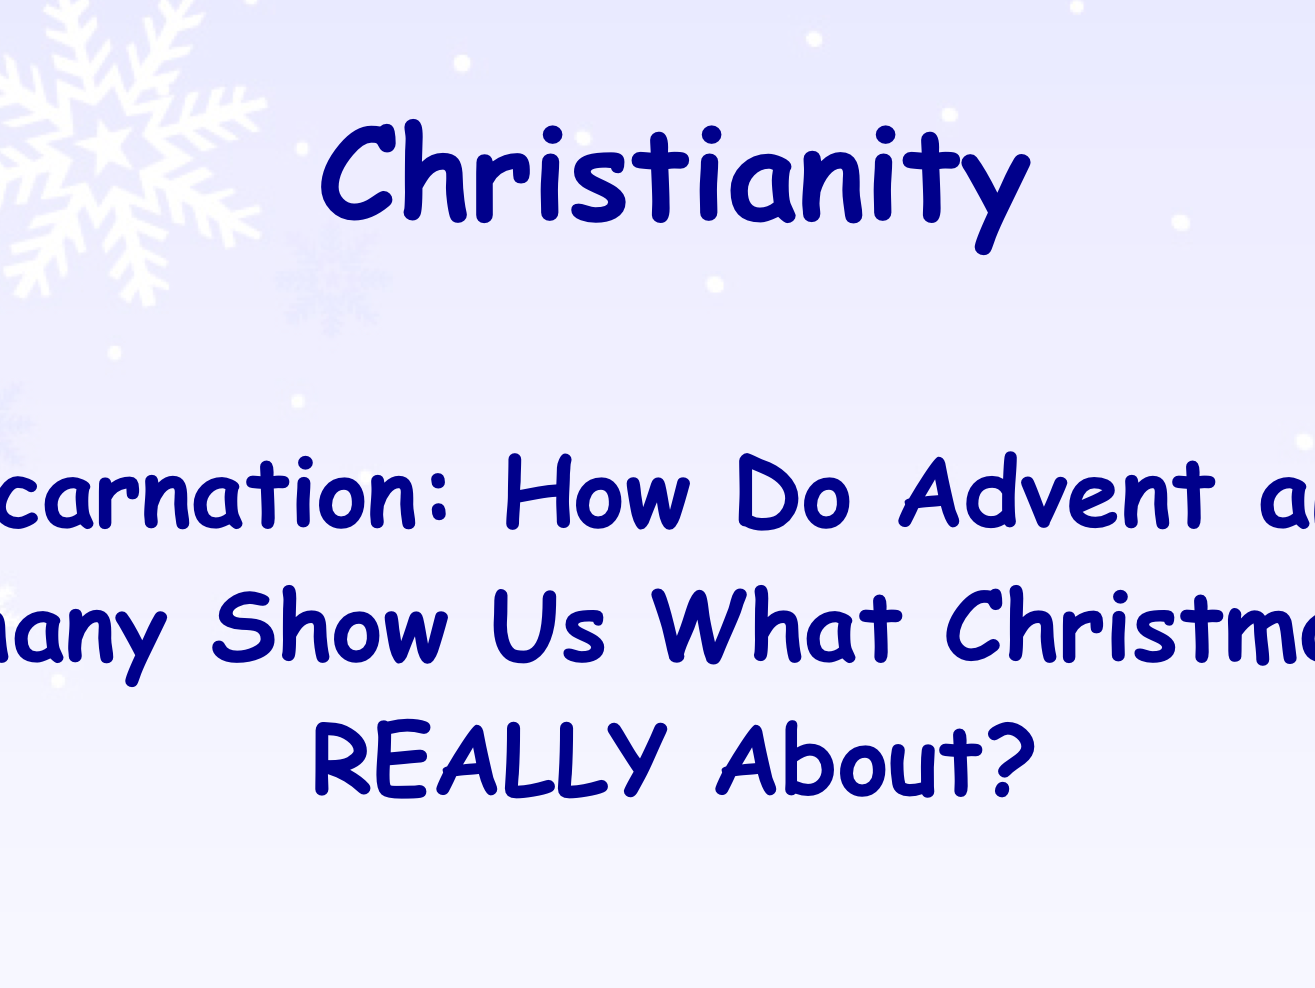 RE Christianity unit on Advent